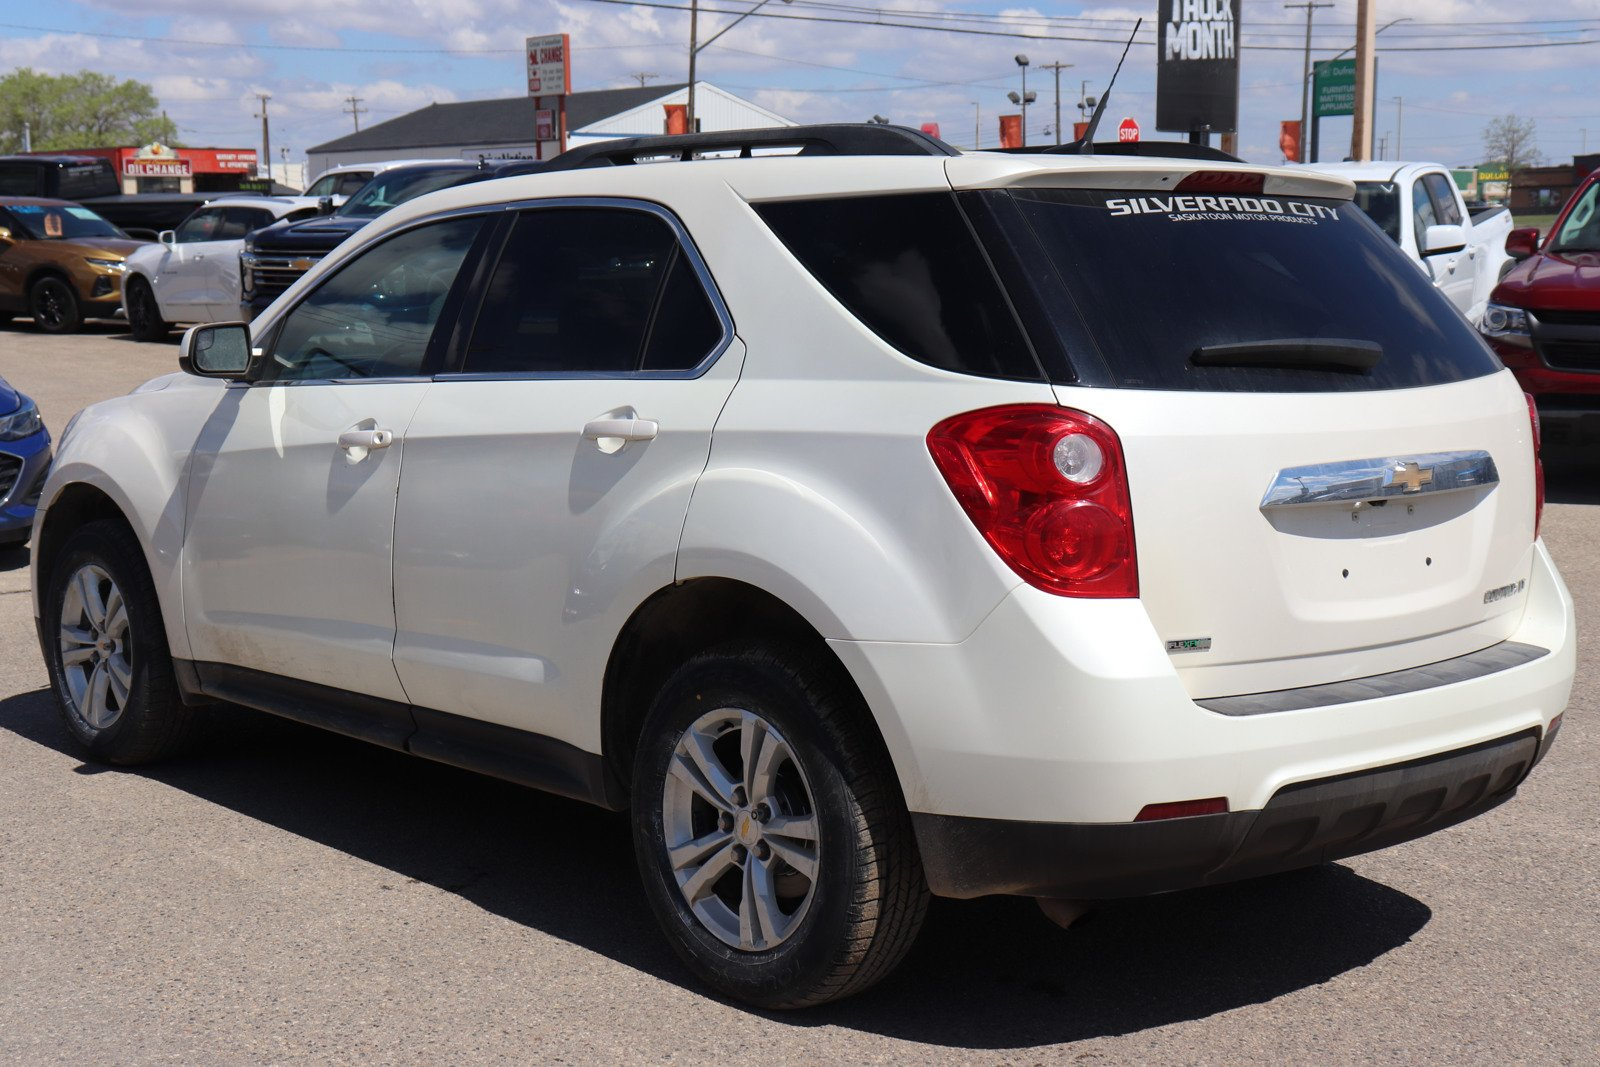 Pre-Owned 2012 Chevrolet Equinox LT, Remote Start, Heated Seats, Back Up Camera, NEW TIRES,